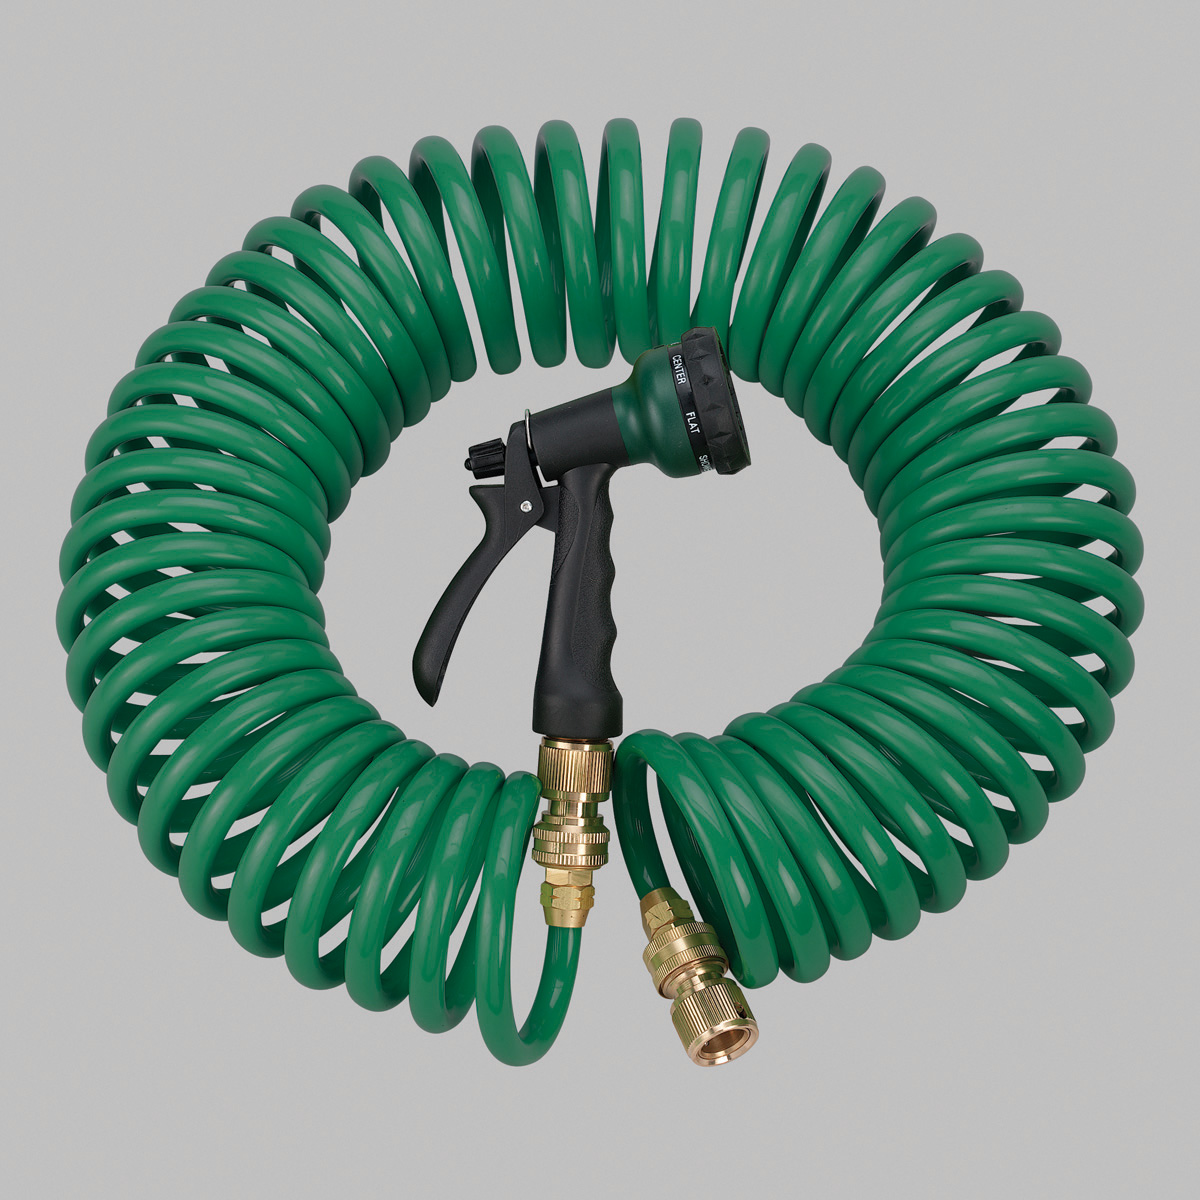 Orbit Green 50' Coiled Garden Hose with 6 Pattern Spray Nozzle, Coil Hoses 27872